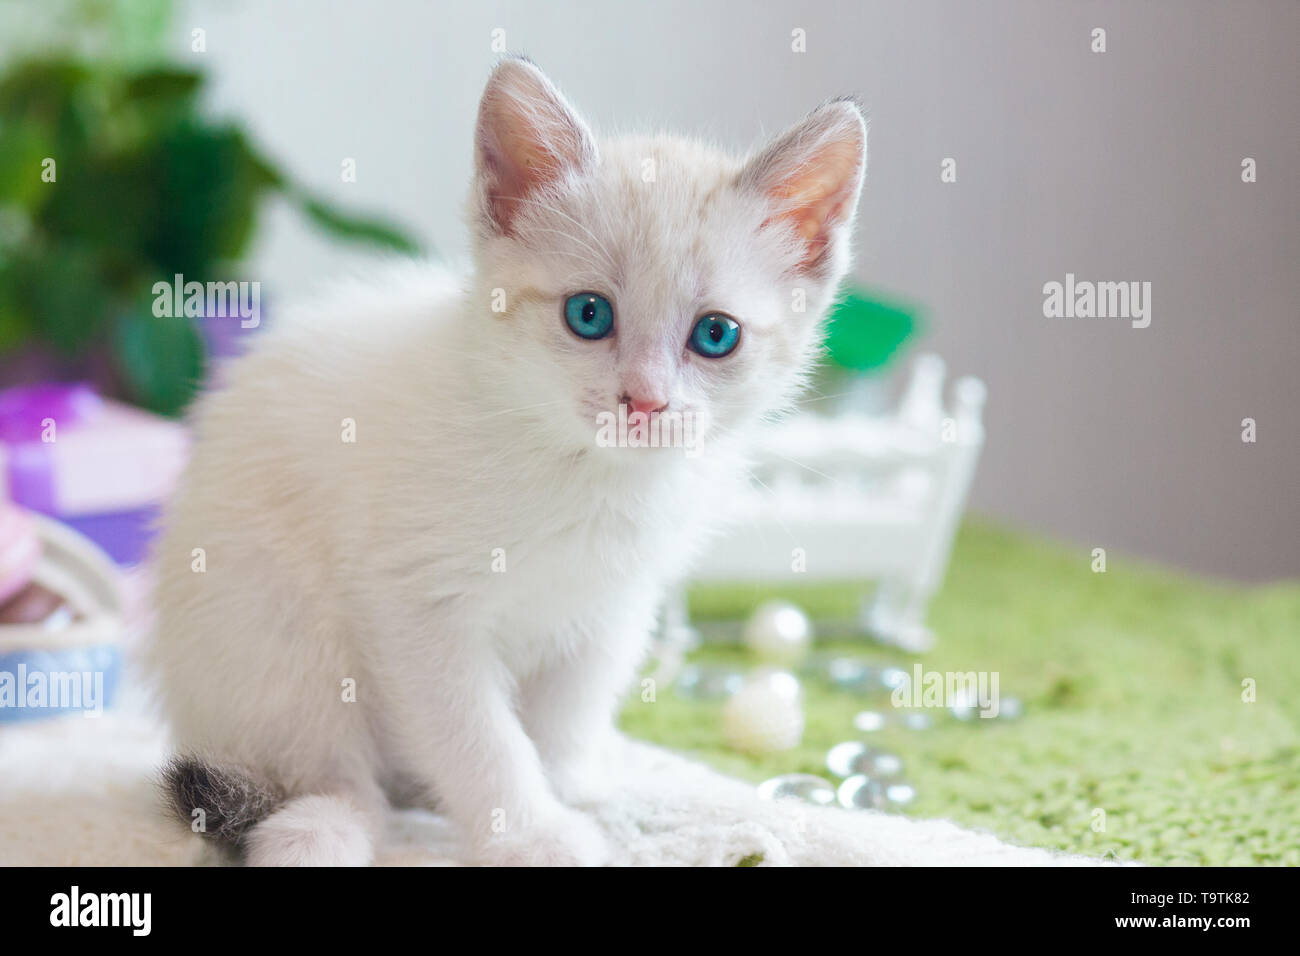 The concept of innocence. Small kitten close-up. White cat looks at the camera. - Stock Image